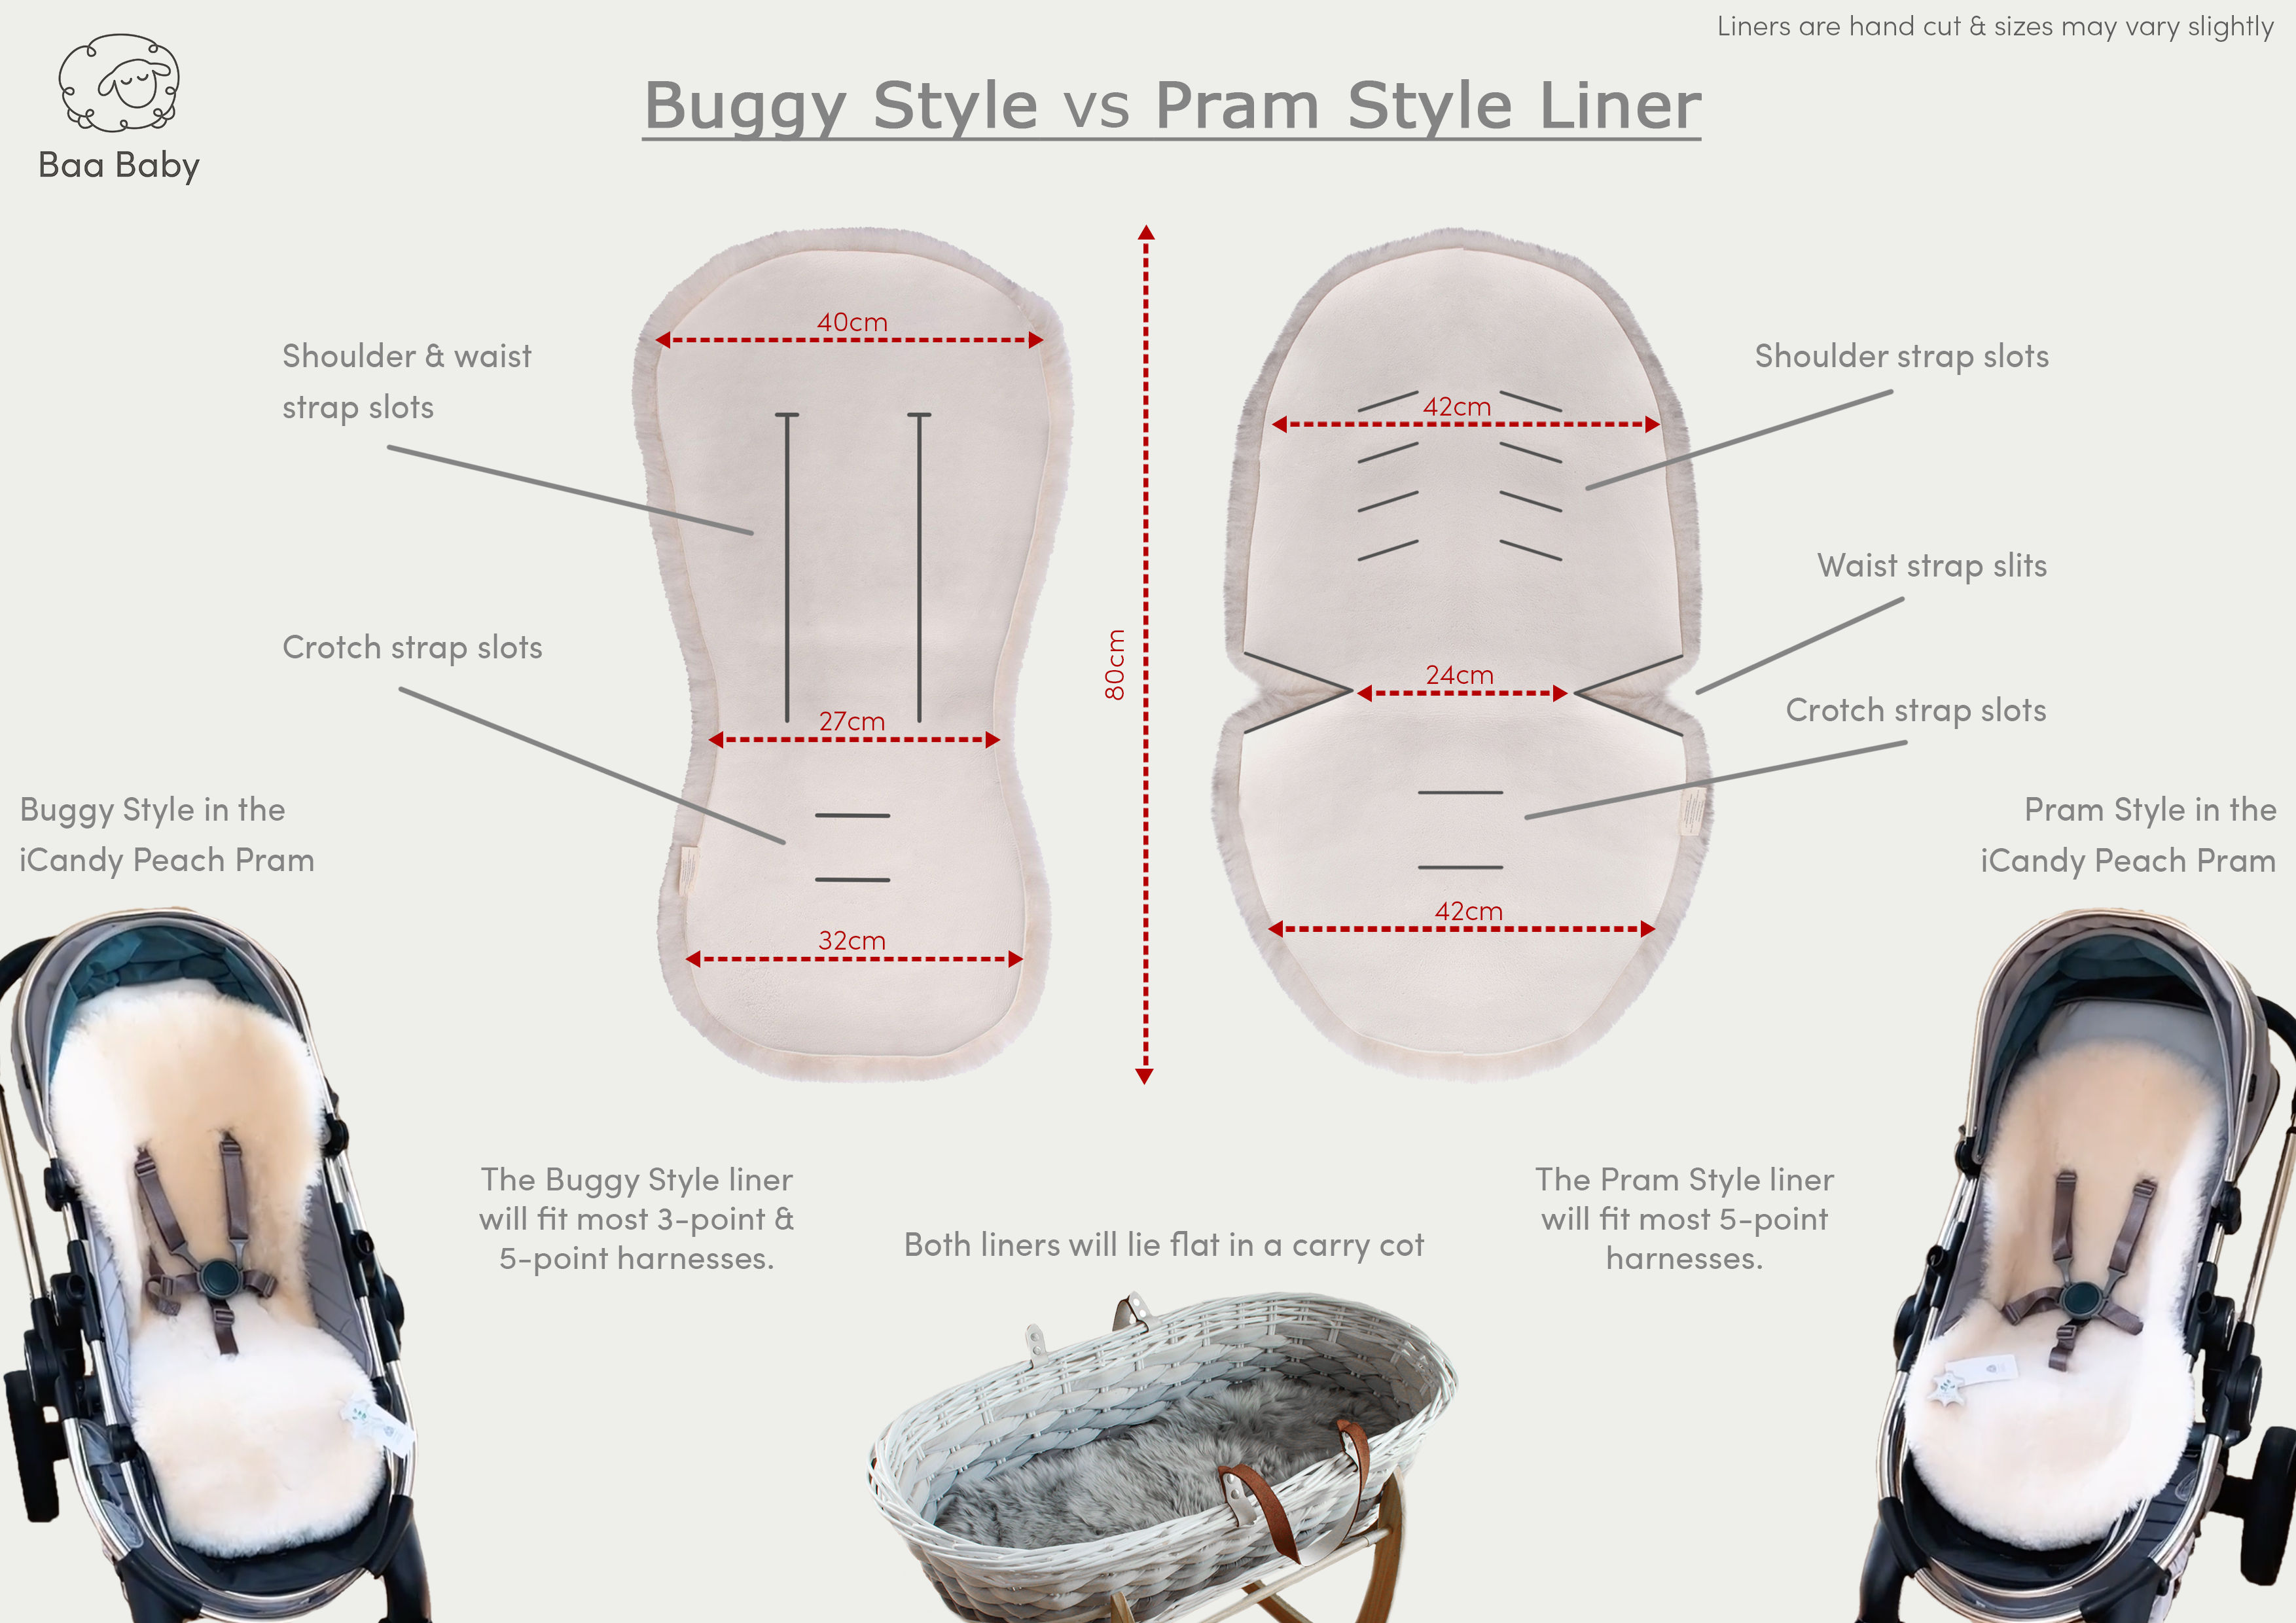 Pram Liner Overview and Comparison